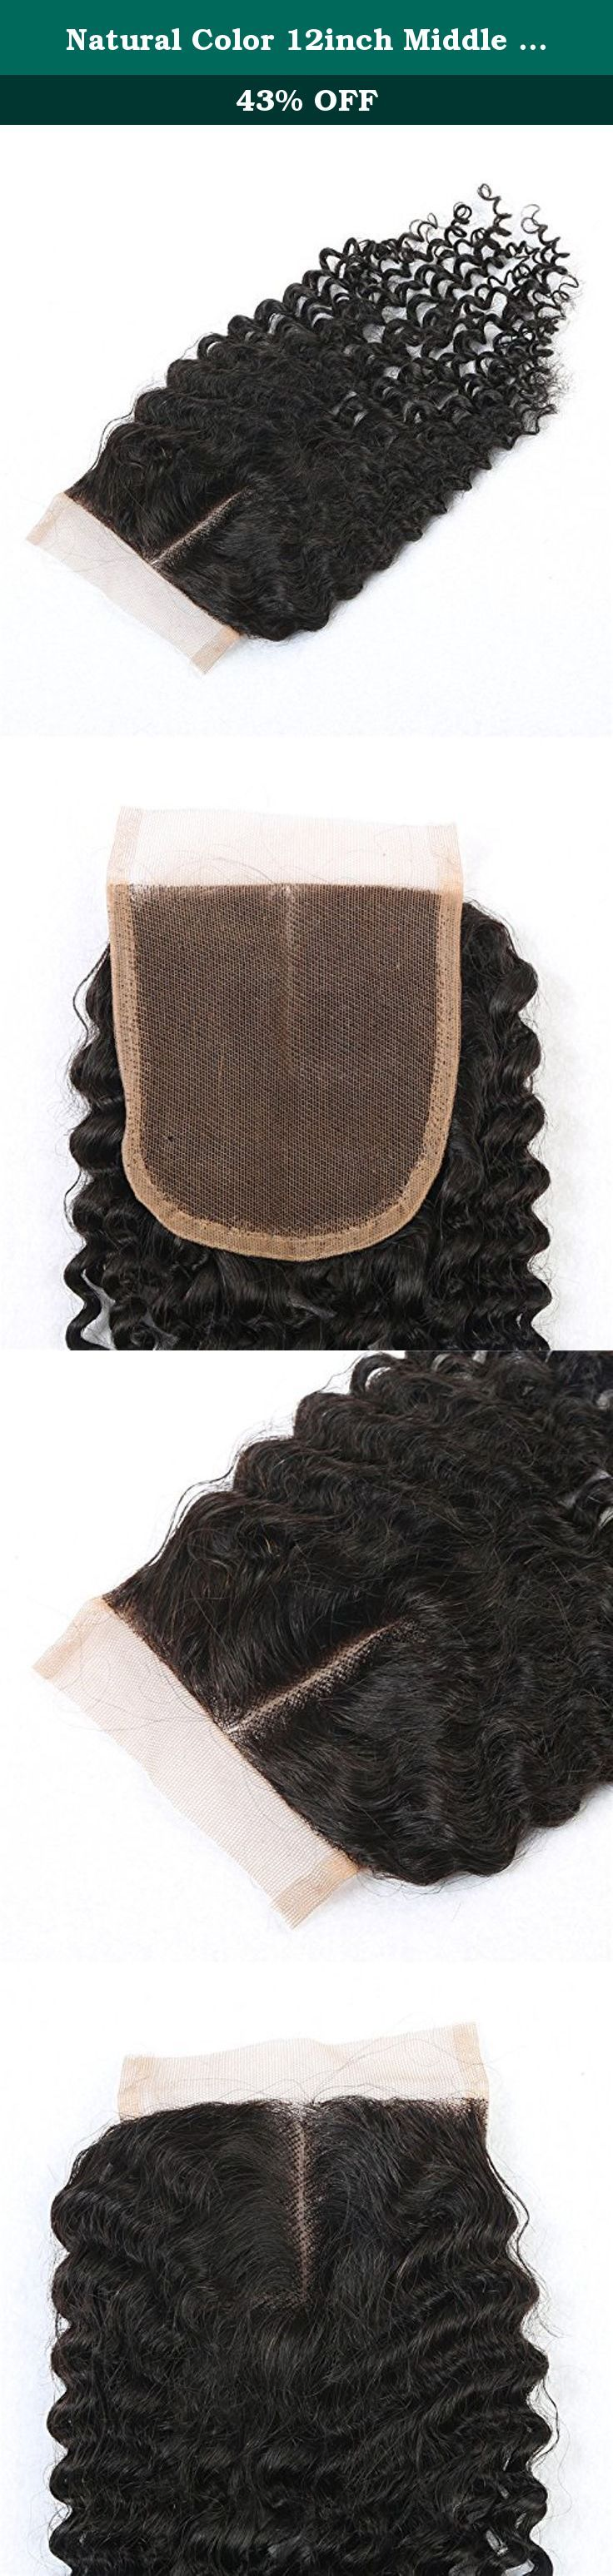 Natural Color 12inch Middle Part Kinky Curly Lace Closure With Baby Hair 4*4 Lace Top Closure At Mxangel. Product details: Hair Material: 100% Peruvian human remy hair Texture: kinky curly, perm or curl is okay, can be restyled according your need! Lace size: swiss lace 4*4 8inch~20inch available middle part Weight: 30g~40g/pc Color: unprocessed natural color, can be dyed and bleached Quality: no tangle, no shedding, no chemical additive, 7A human remy hair Service: excellent customer...